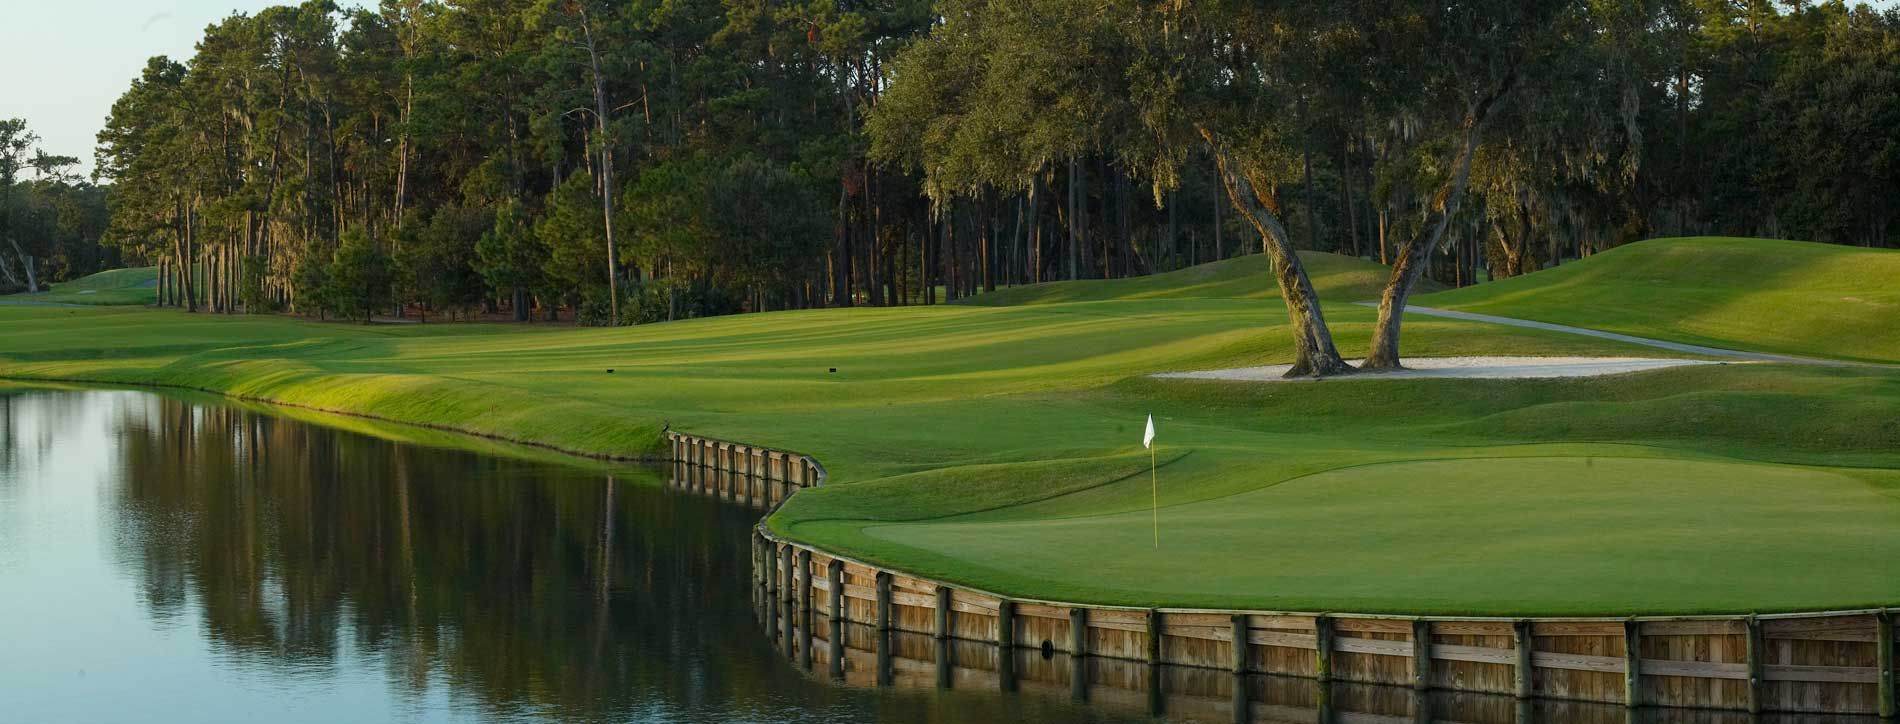 No. 16 at TPC Sawgrass ushers in one of golf's most famous finishing stretches.